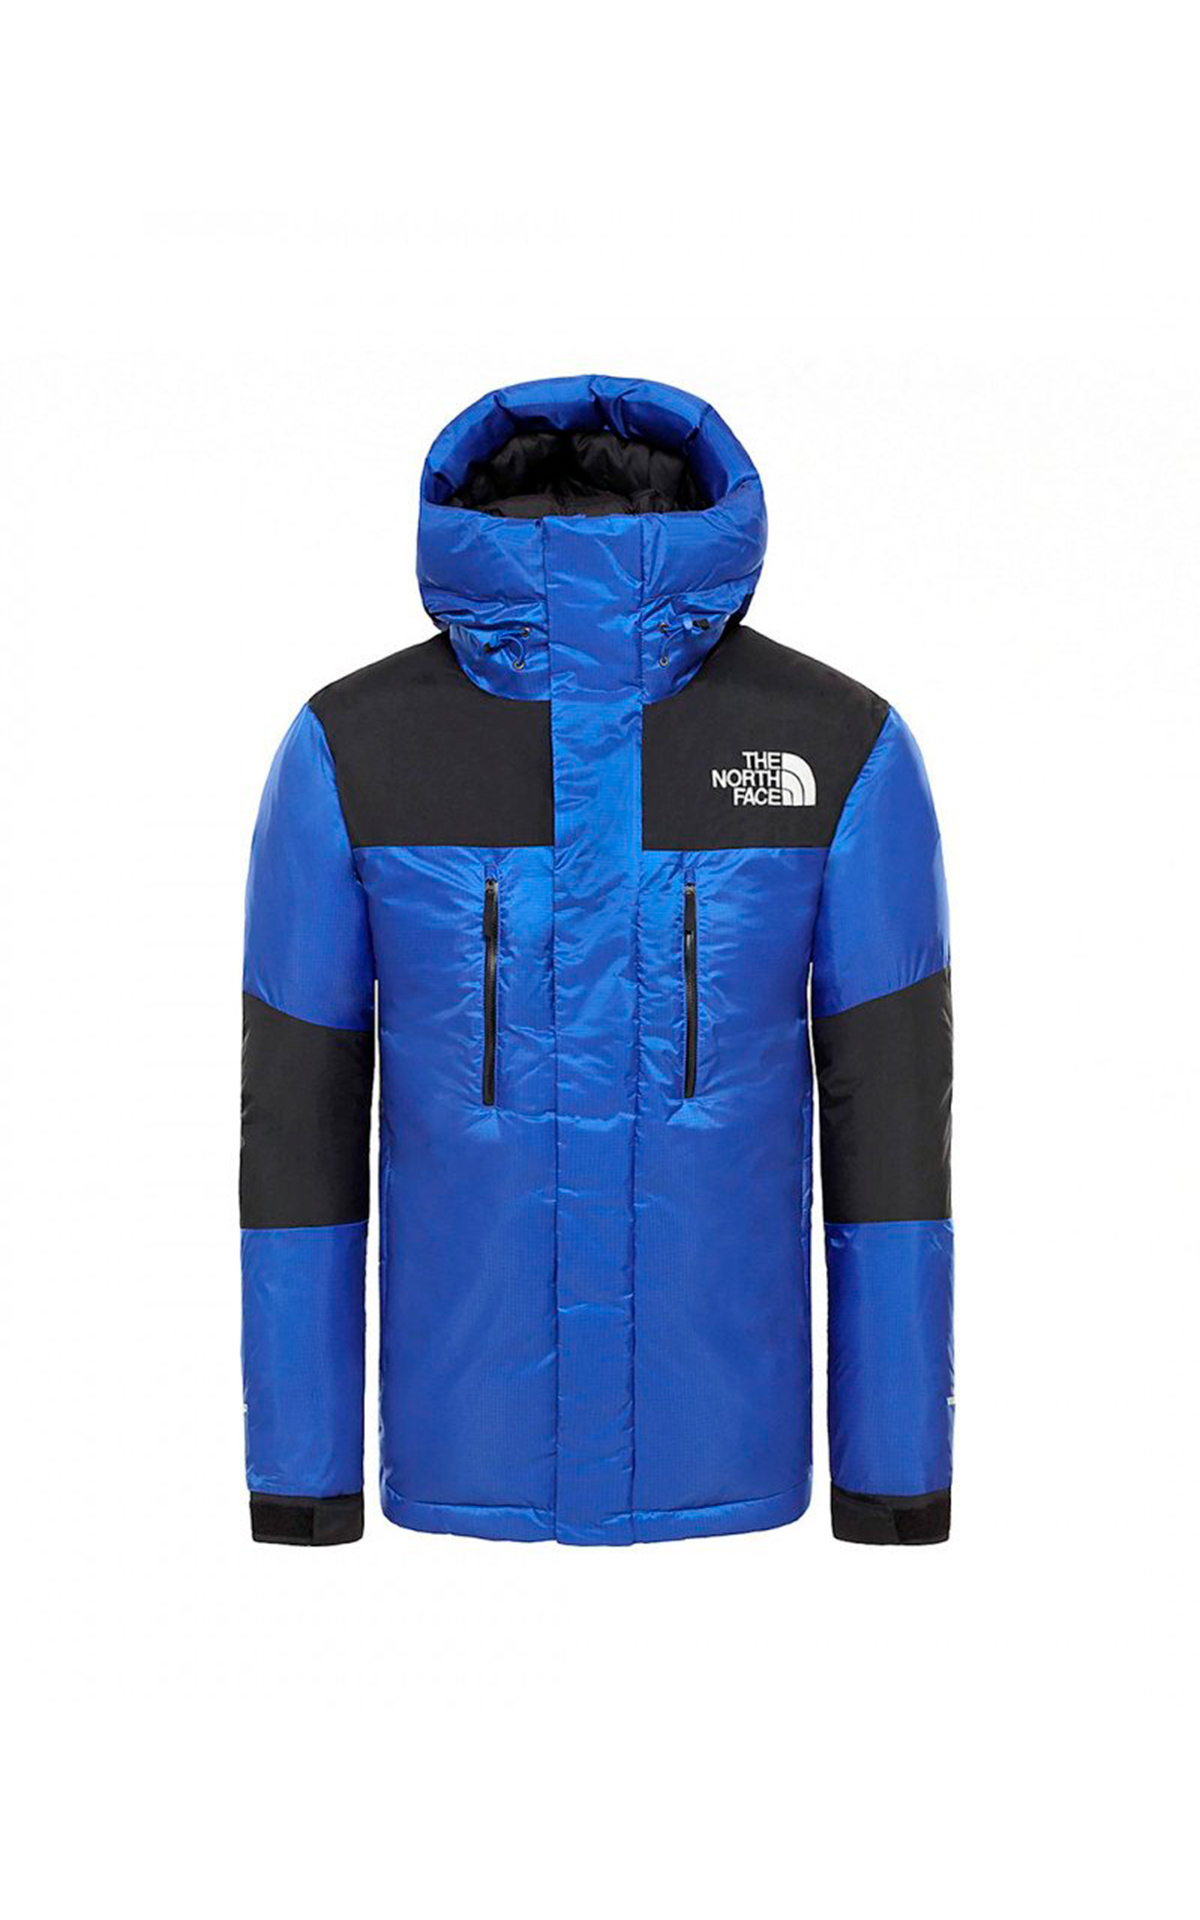 Cortavientos azul The North Face